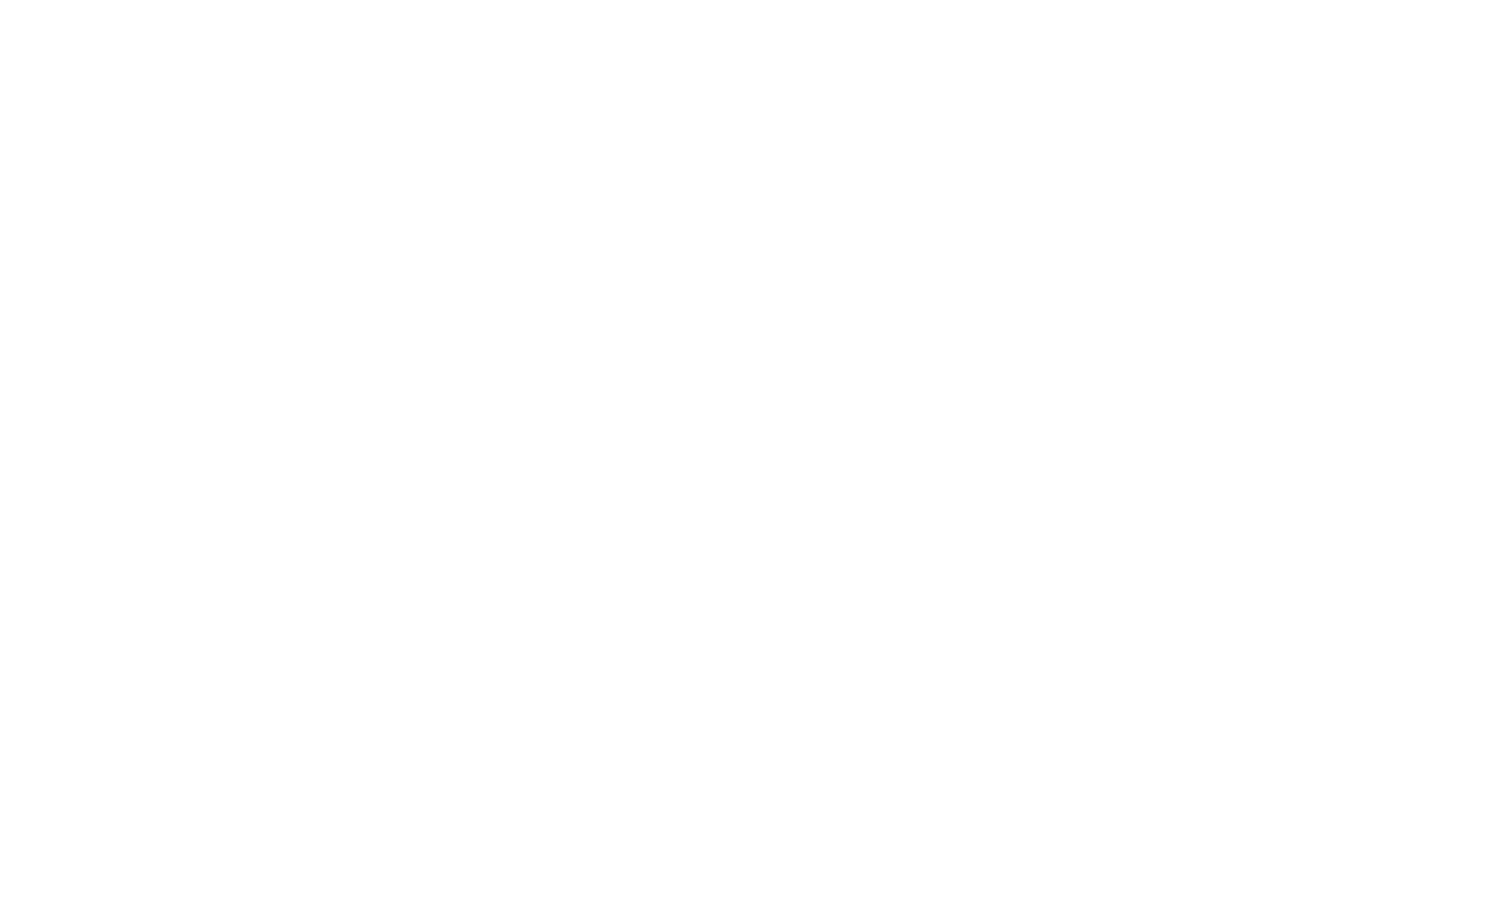 Princeton Racing Electric